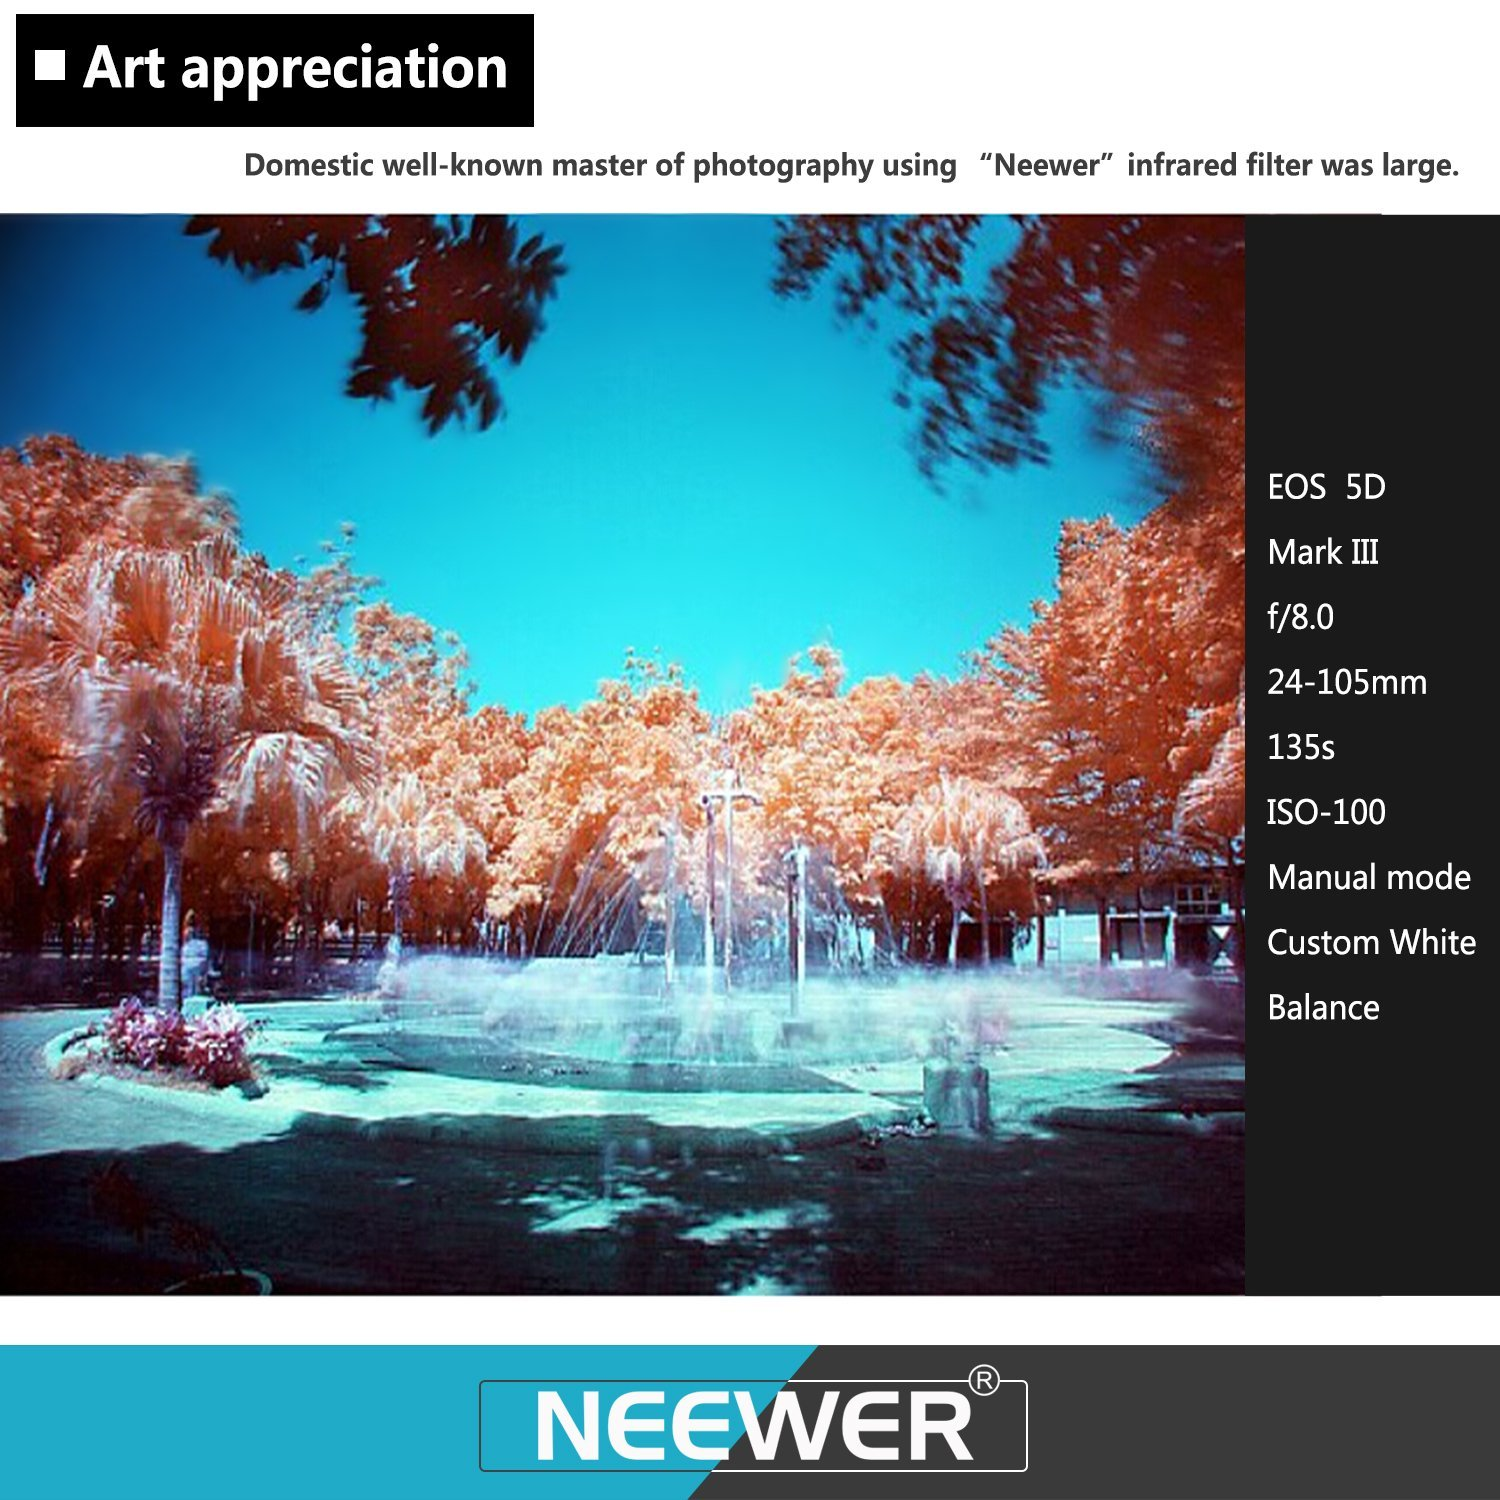 IR950 with Filter Carrying Pouch for Canon EOS 700D 650D 600D 500D 450D 400D 350D 300D 1100D 1000D 100D 60D DSLR Camera IR760 Neewer 4 Pieces 58mm Infrared X-Ray IR Filter Set IR720 IR850